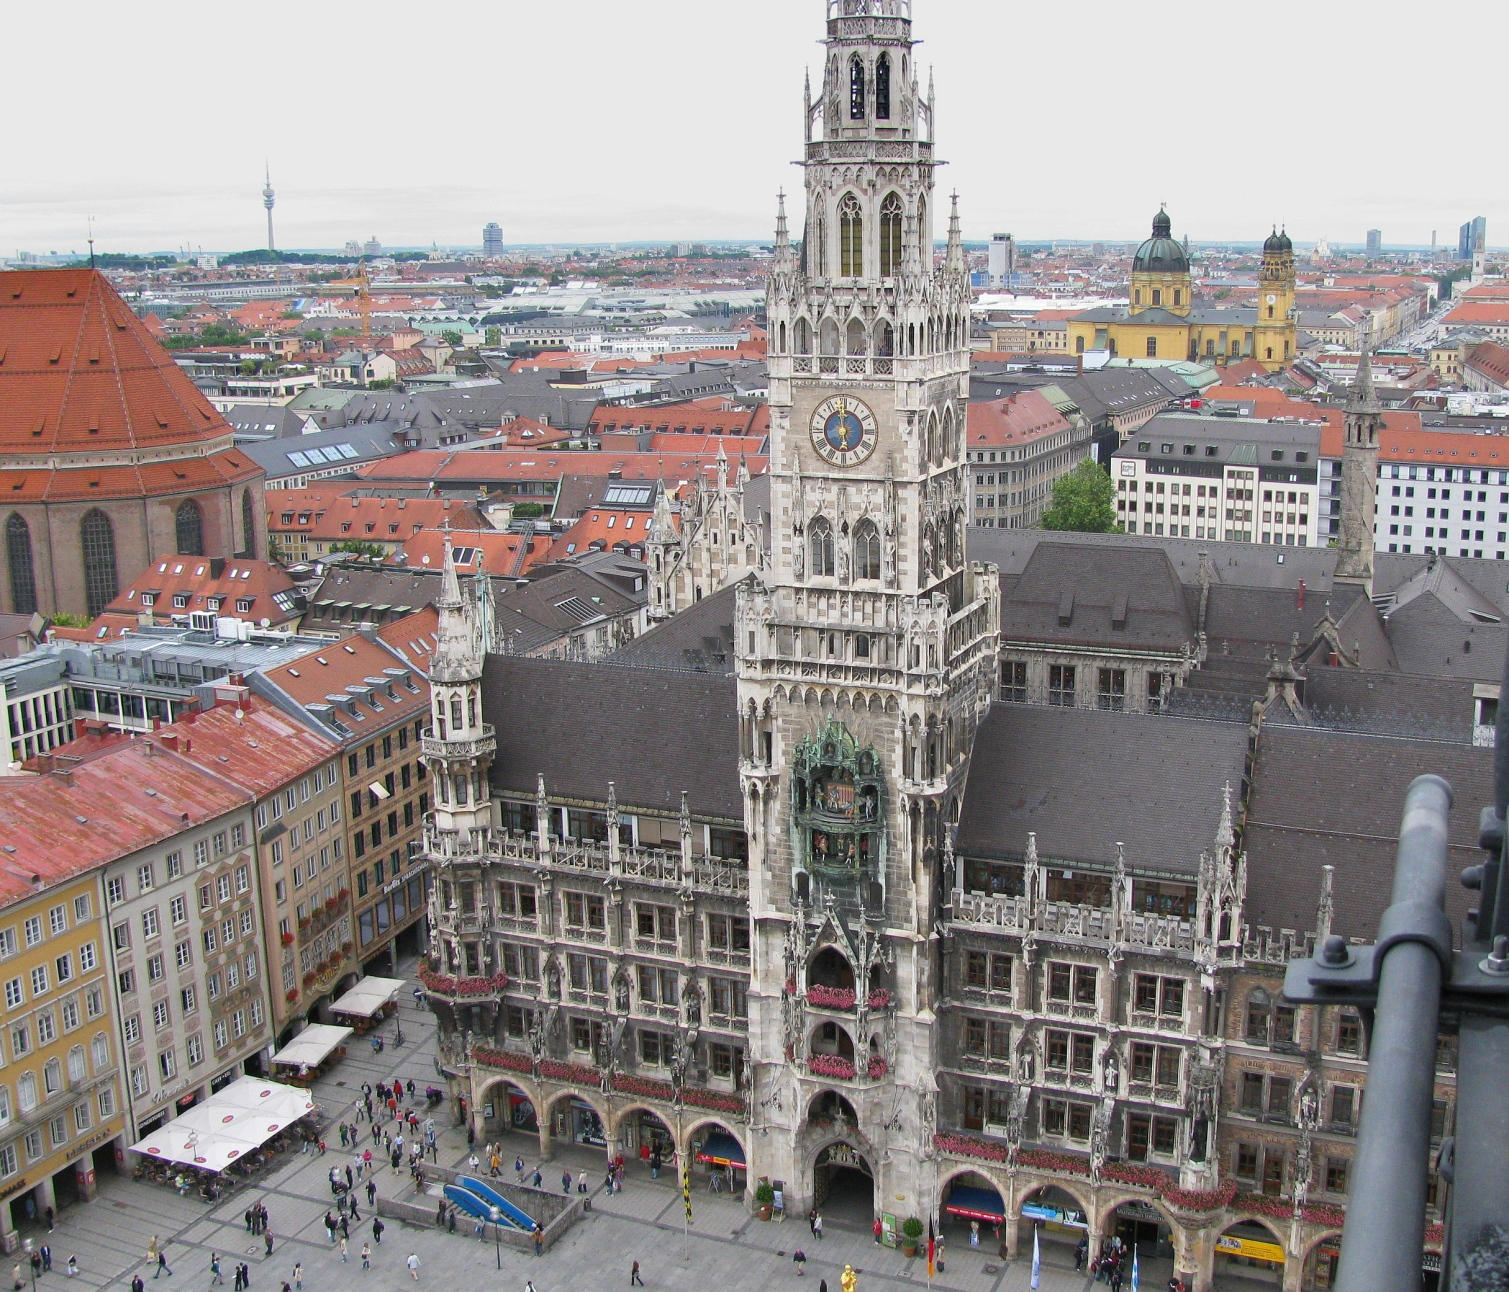 Marienplatz. The New Town Hall as seen from Peterskirche belltower.